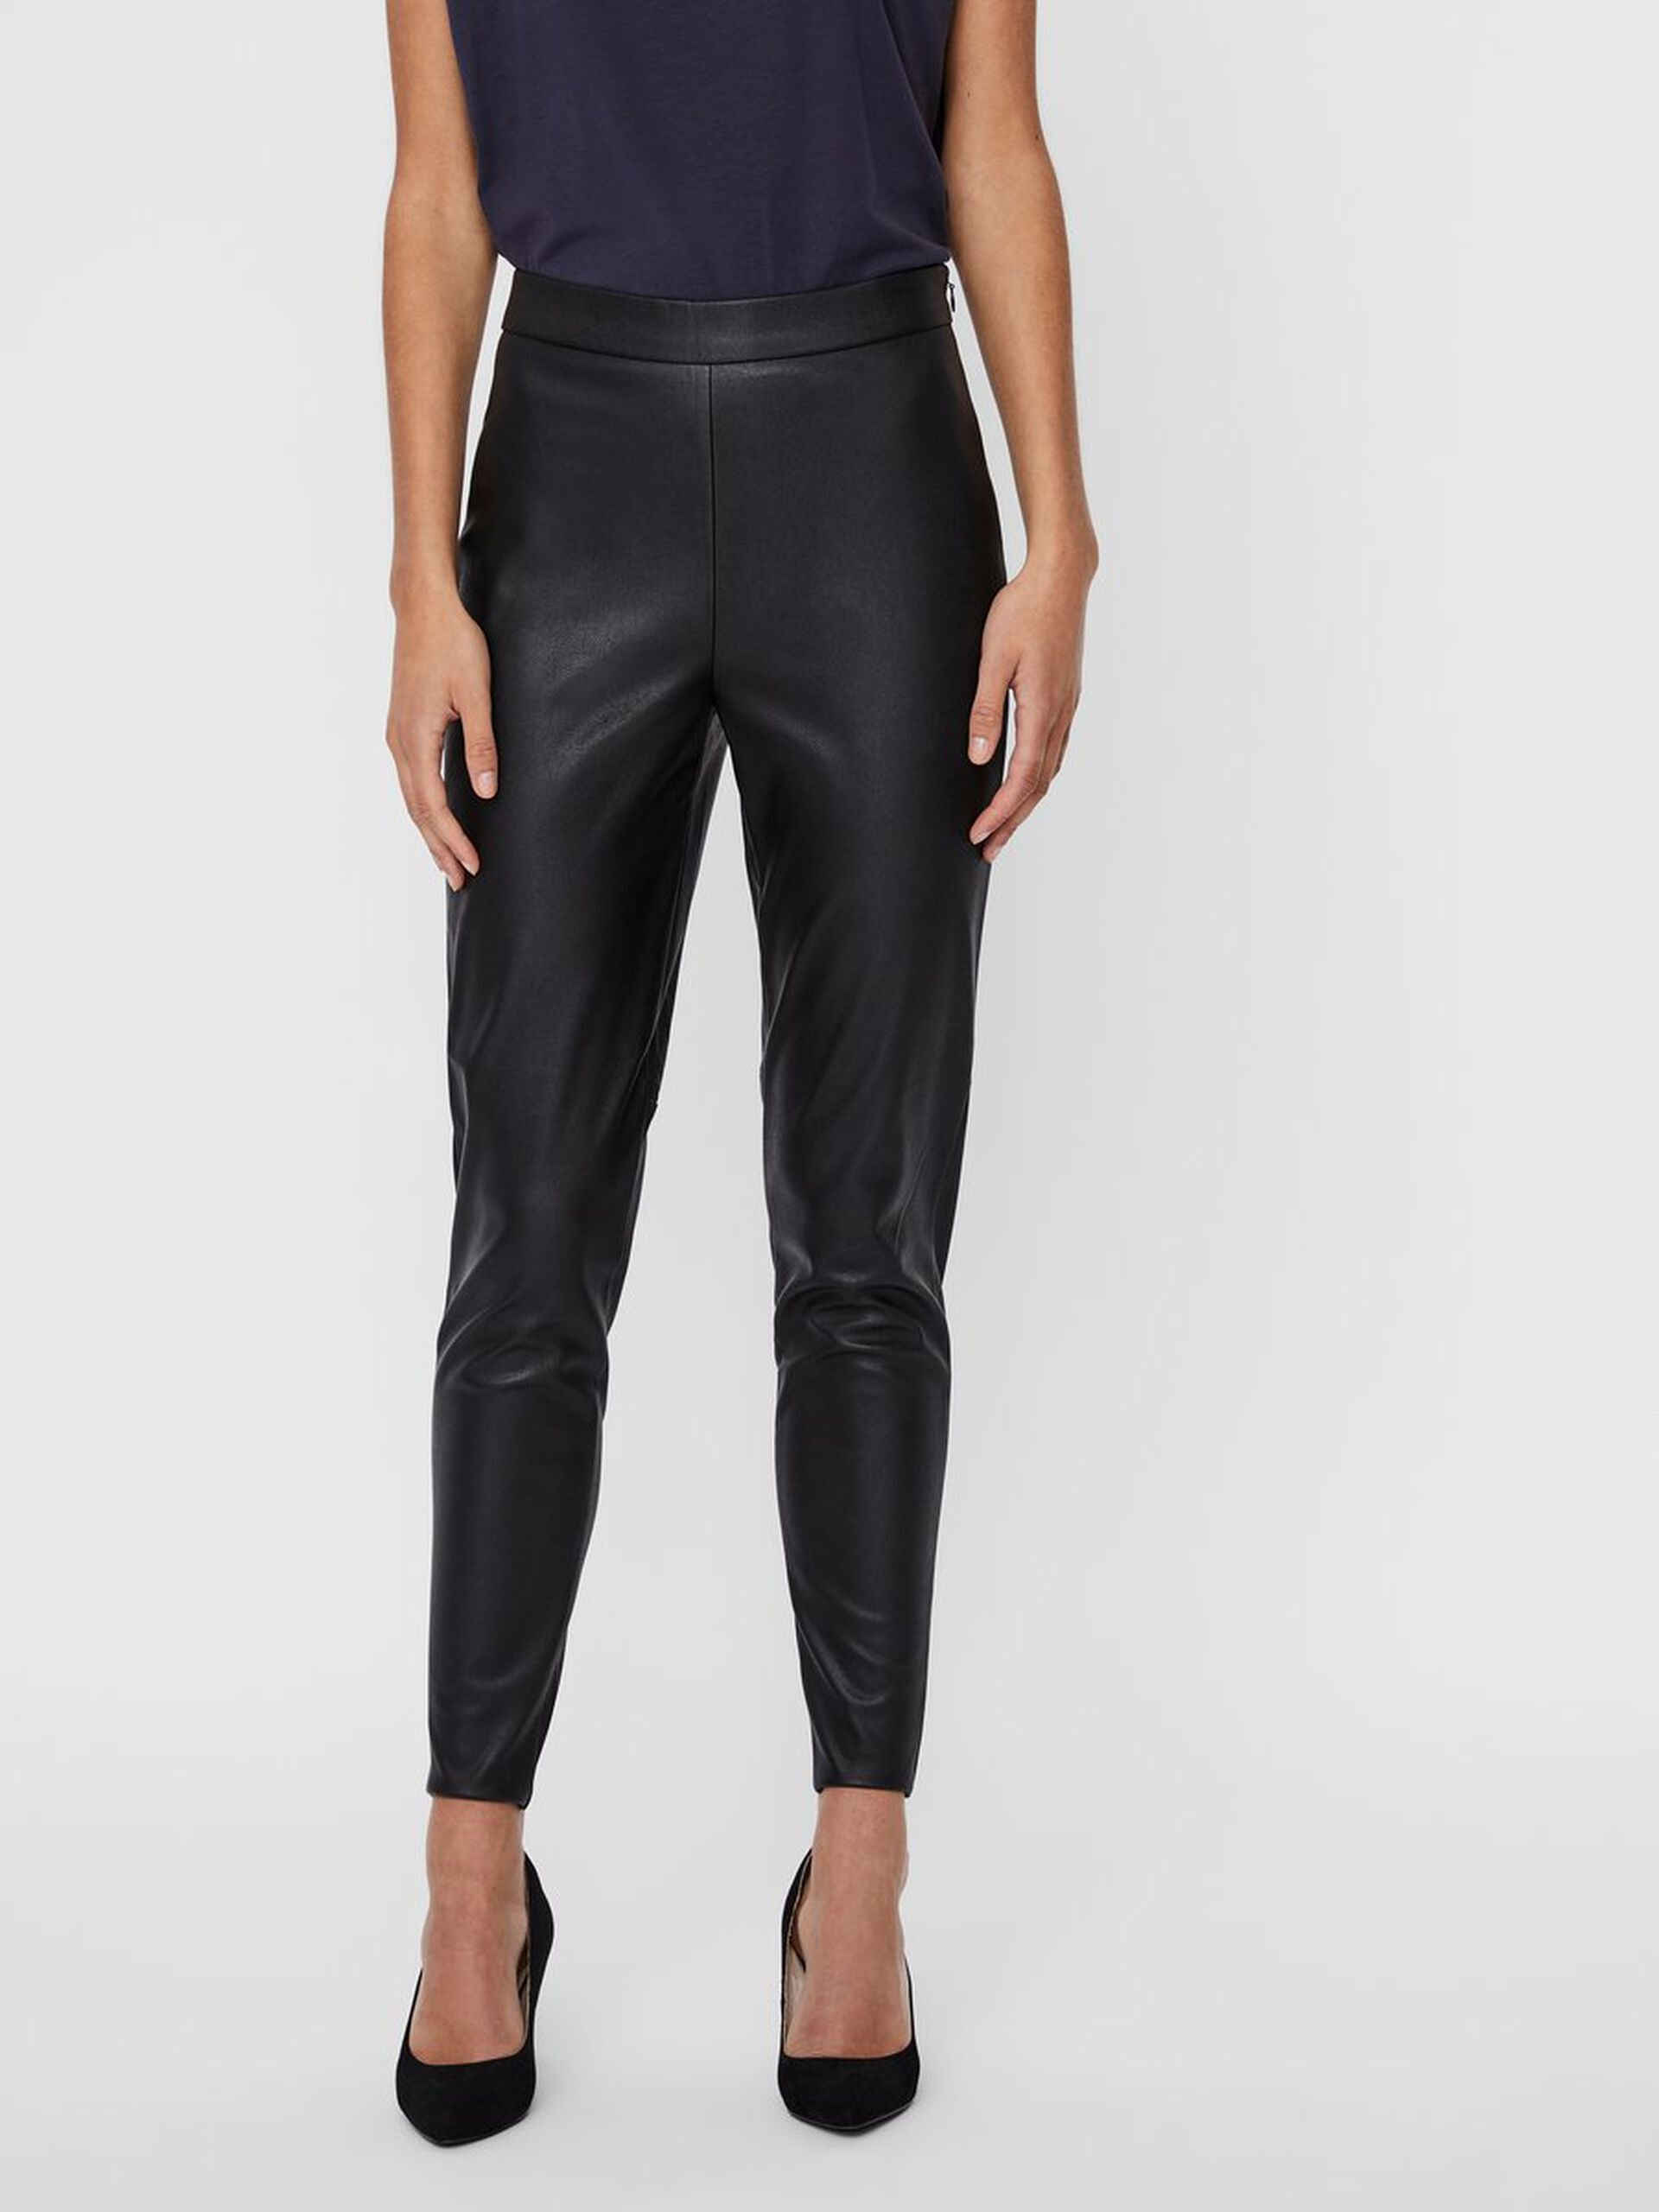 Vero Moda Janni Faux Leather Leggings- Black close up front